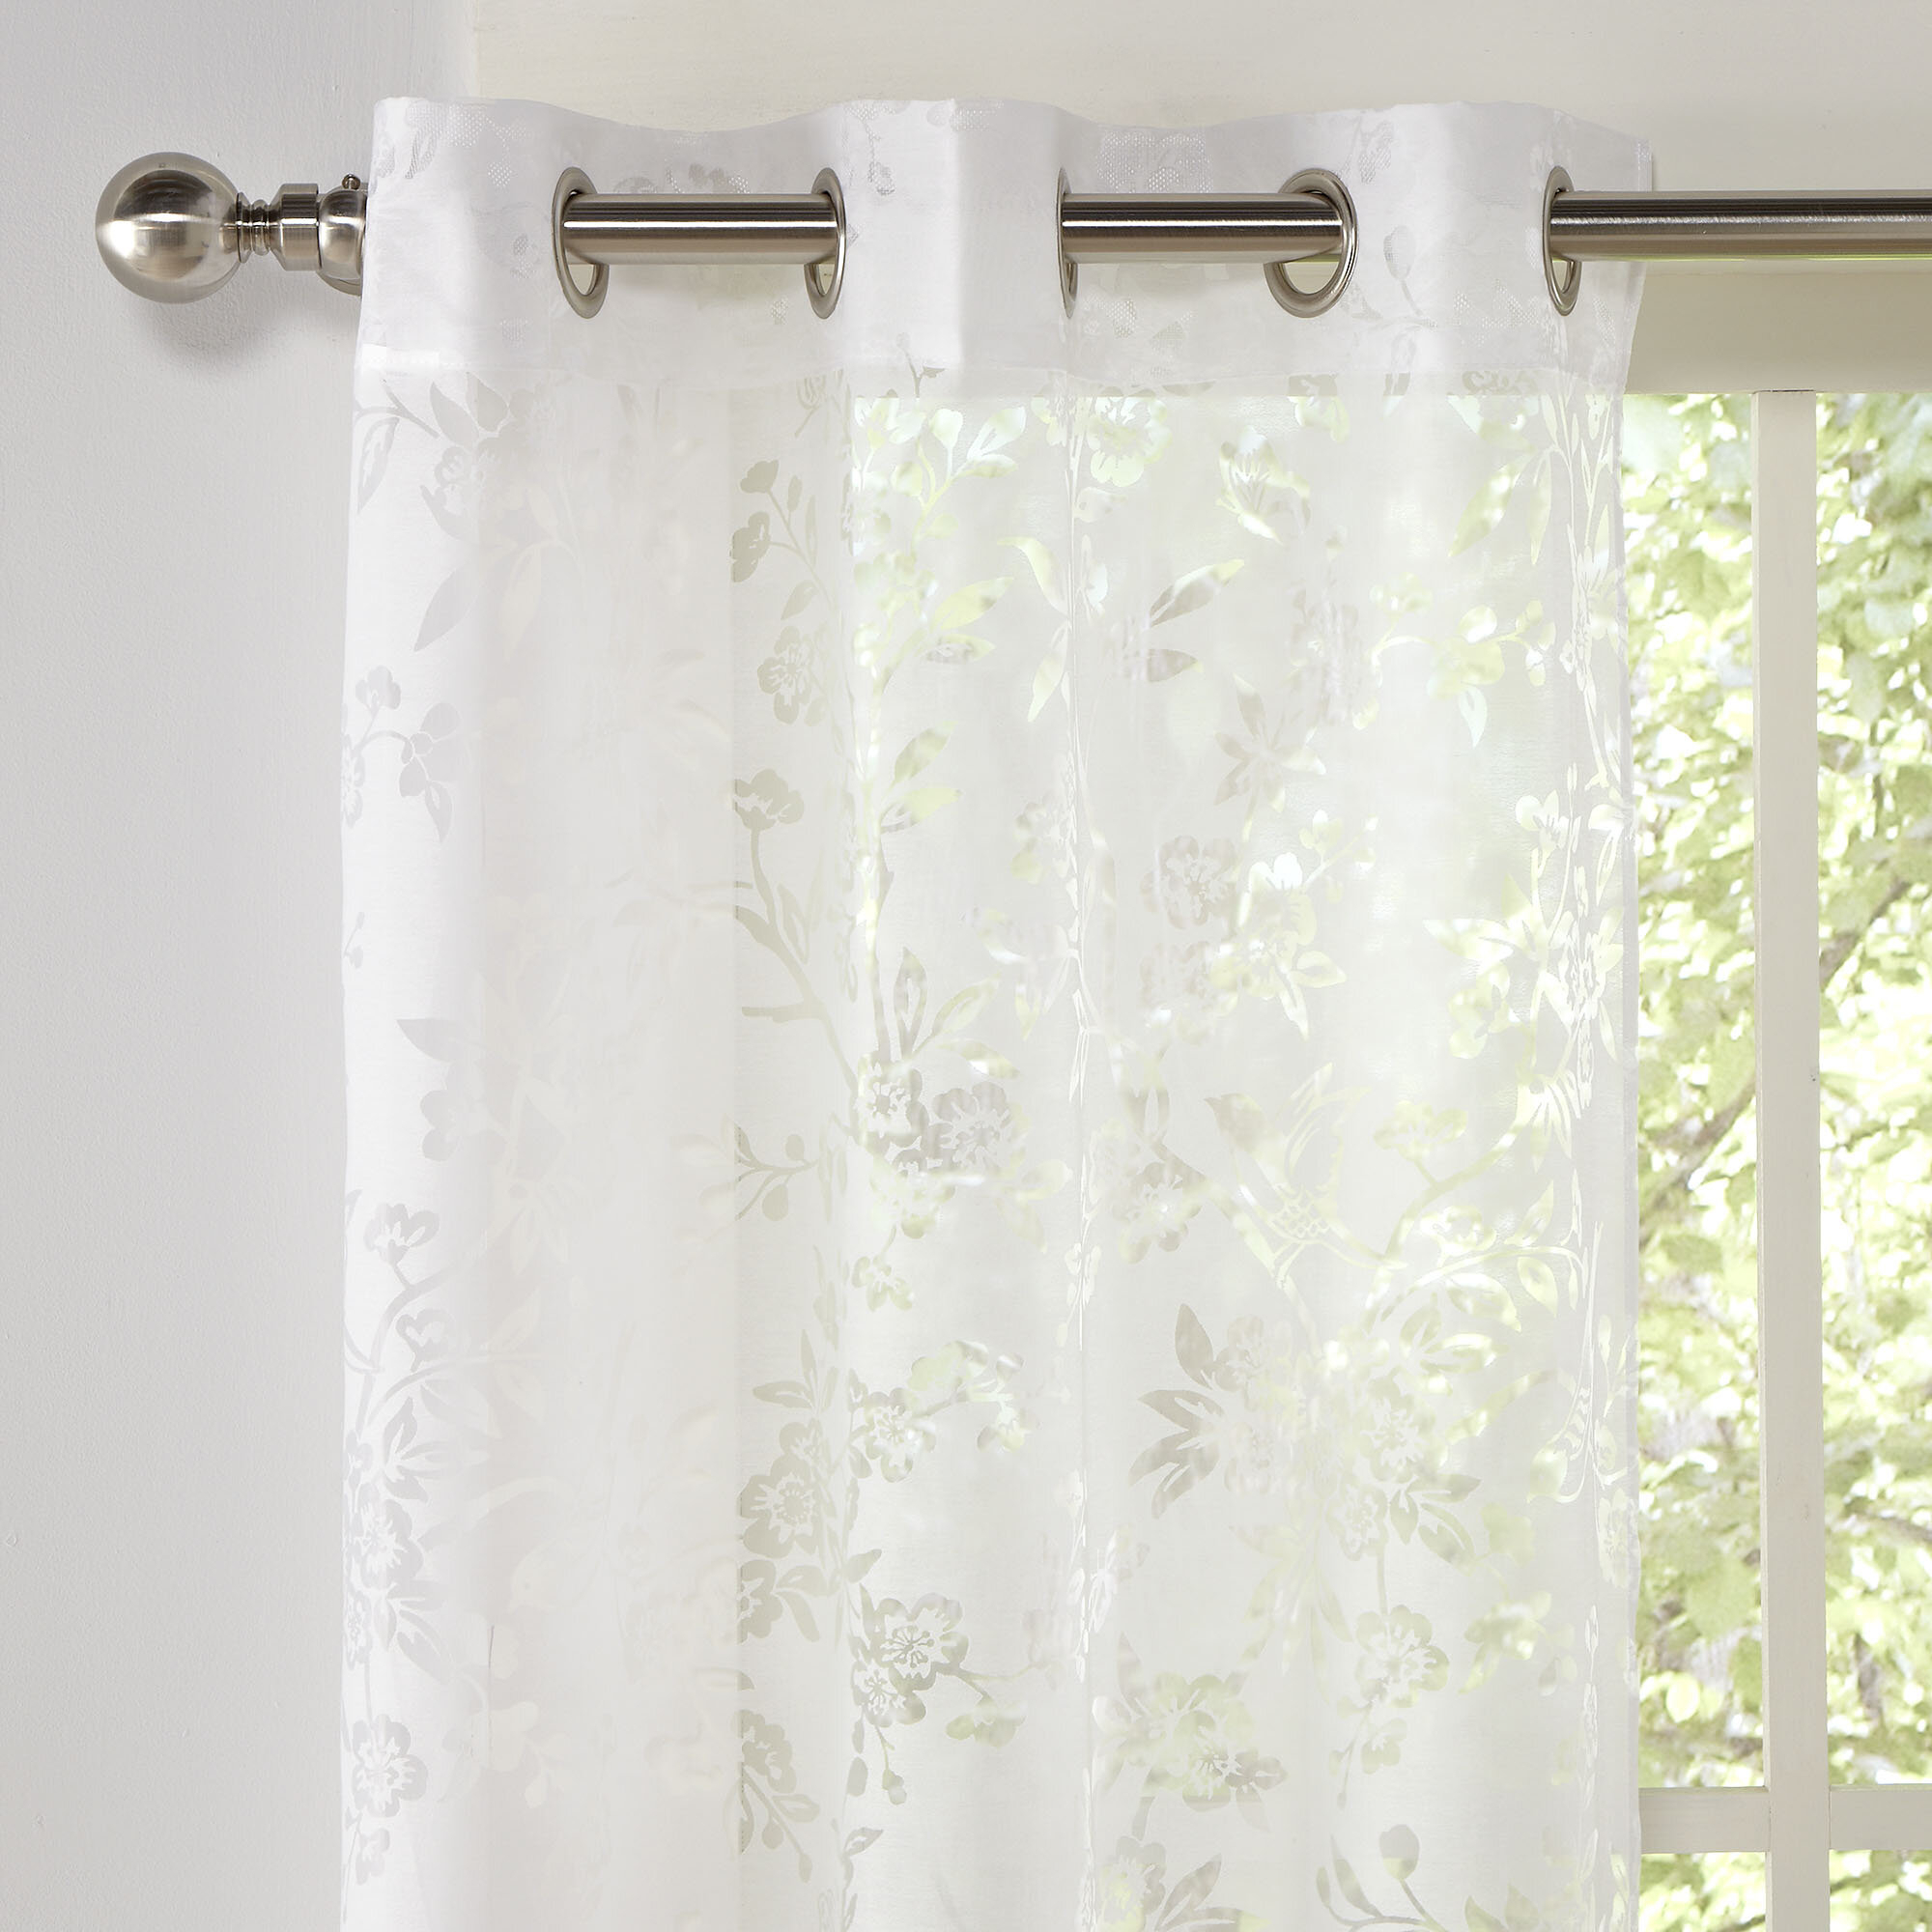 Polla Curtain Panels For Ruffle Diamond Curtain Panel Pairs (View 20 of 20)